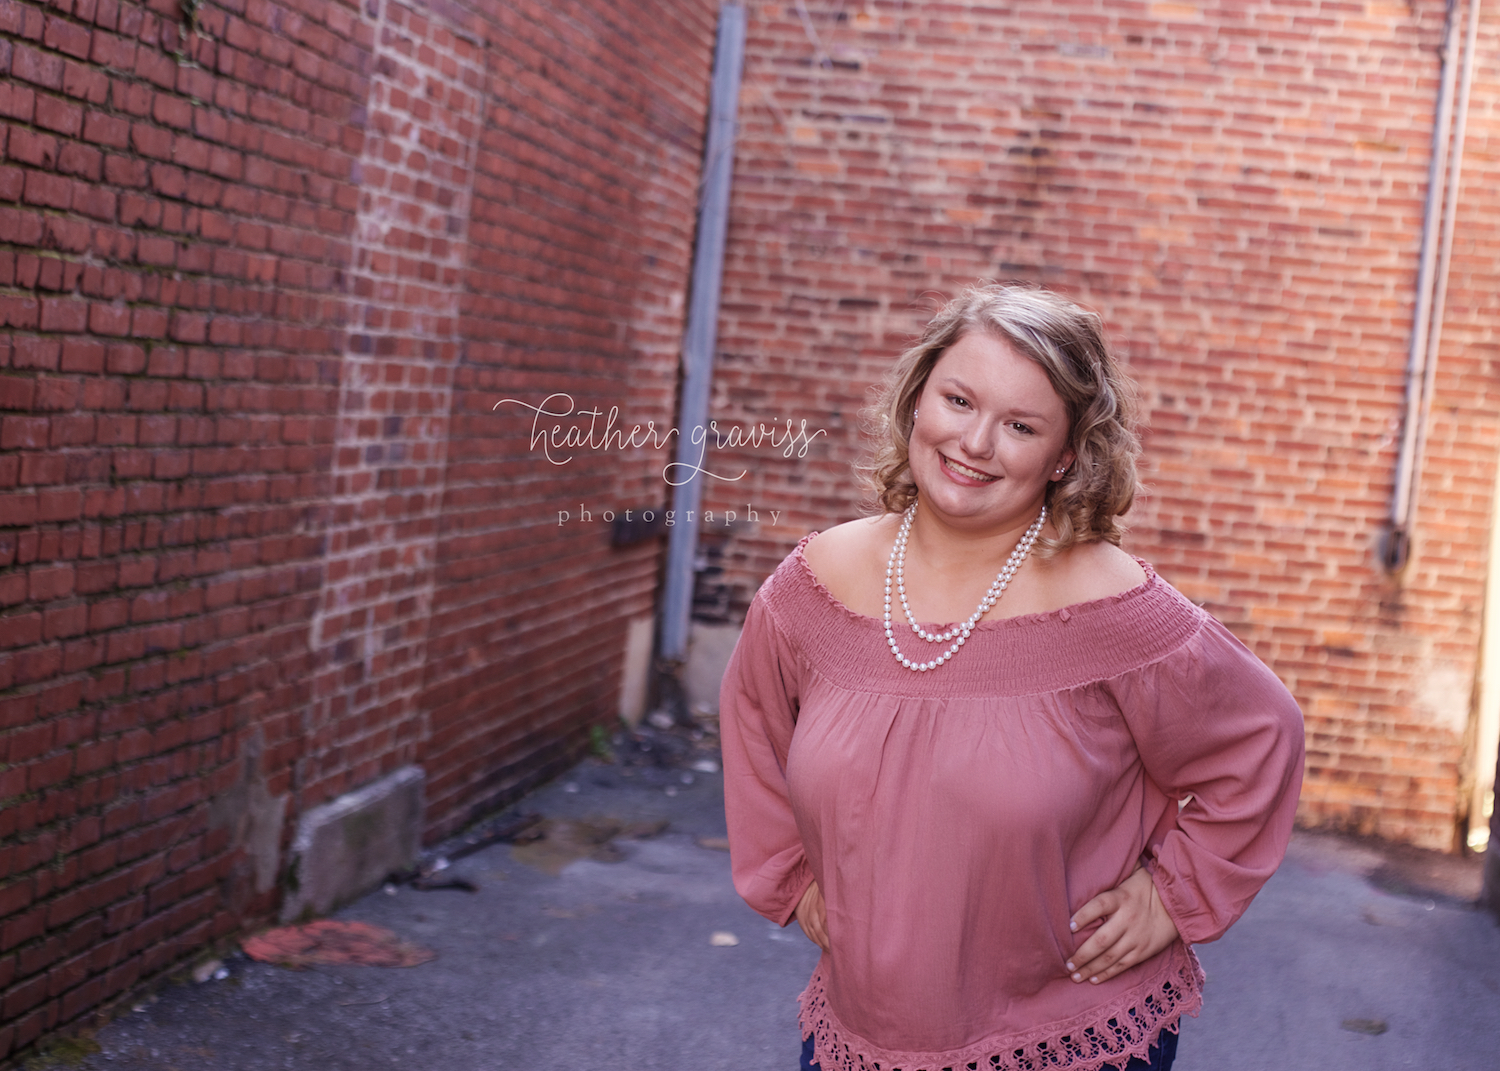 nashville middle tn senior portrait photographer 066.jpg